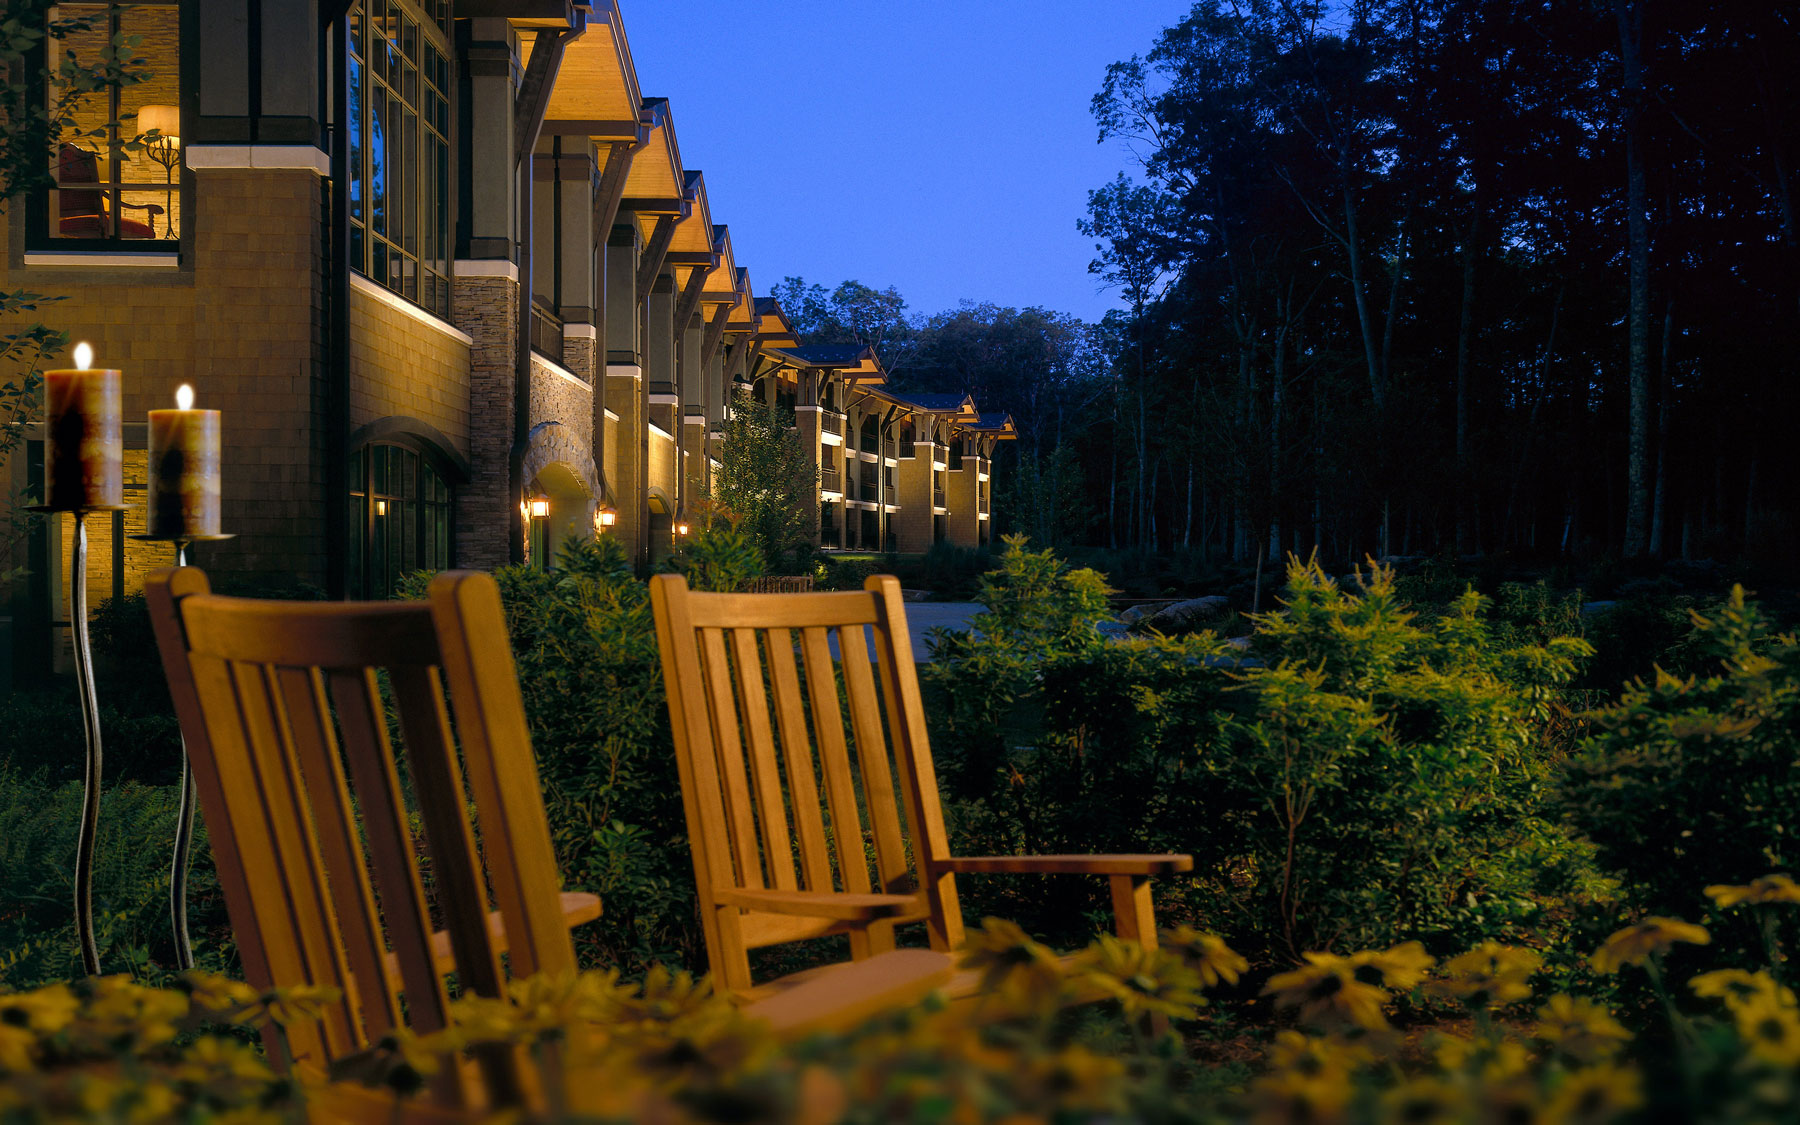 Rocking chairs at The Lodge at Woodloch